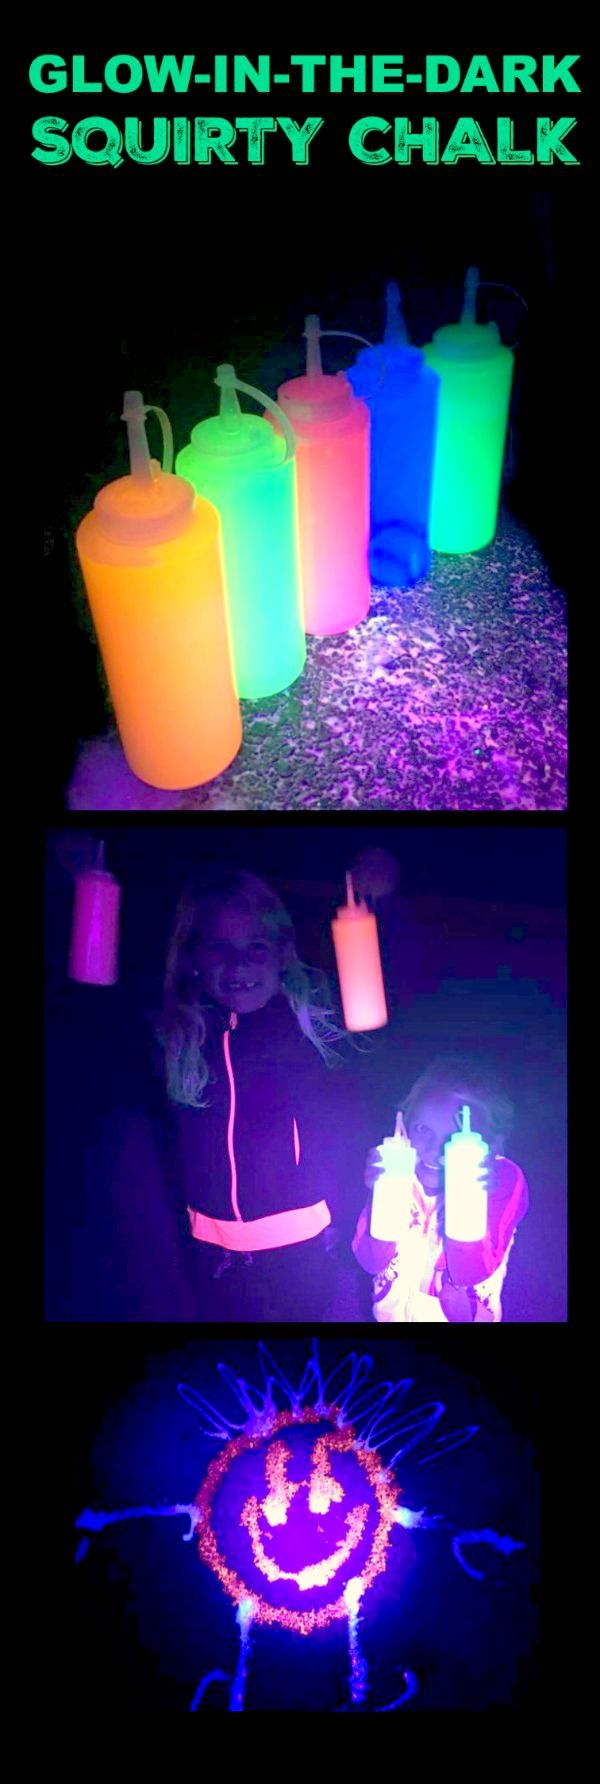 Glow in the dark crafts - 25 Best Ideas About Glow Crafts On Pinterest Birthday Crafts Simple Crafts And Fairy Crafts